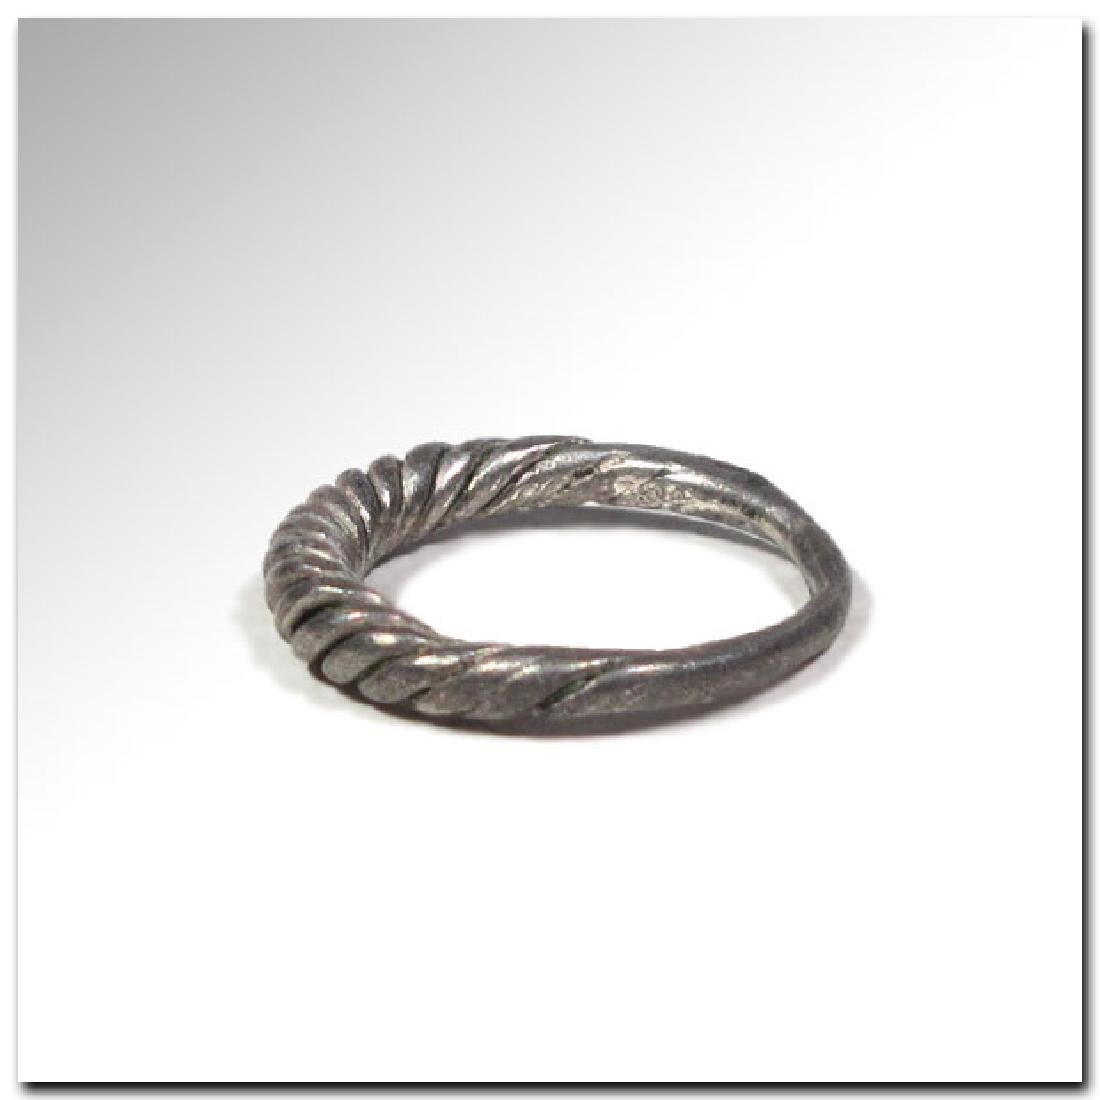 Viking Twisted Silver Ring, 9th -11th Century A.D. - 3